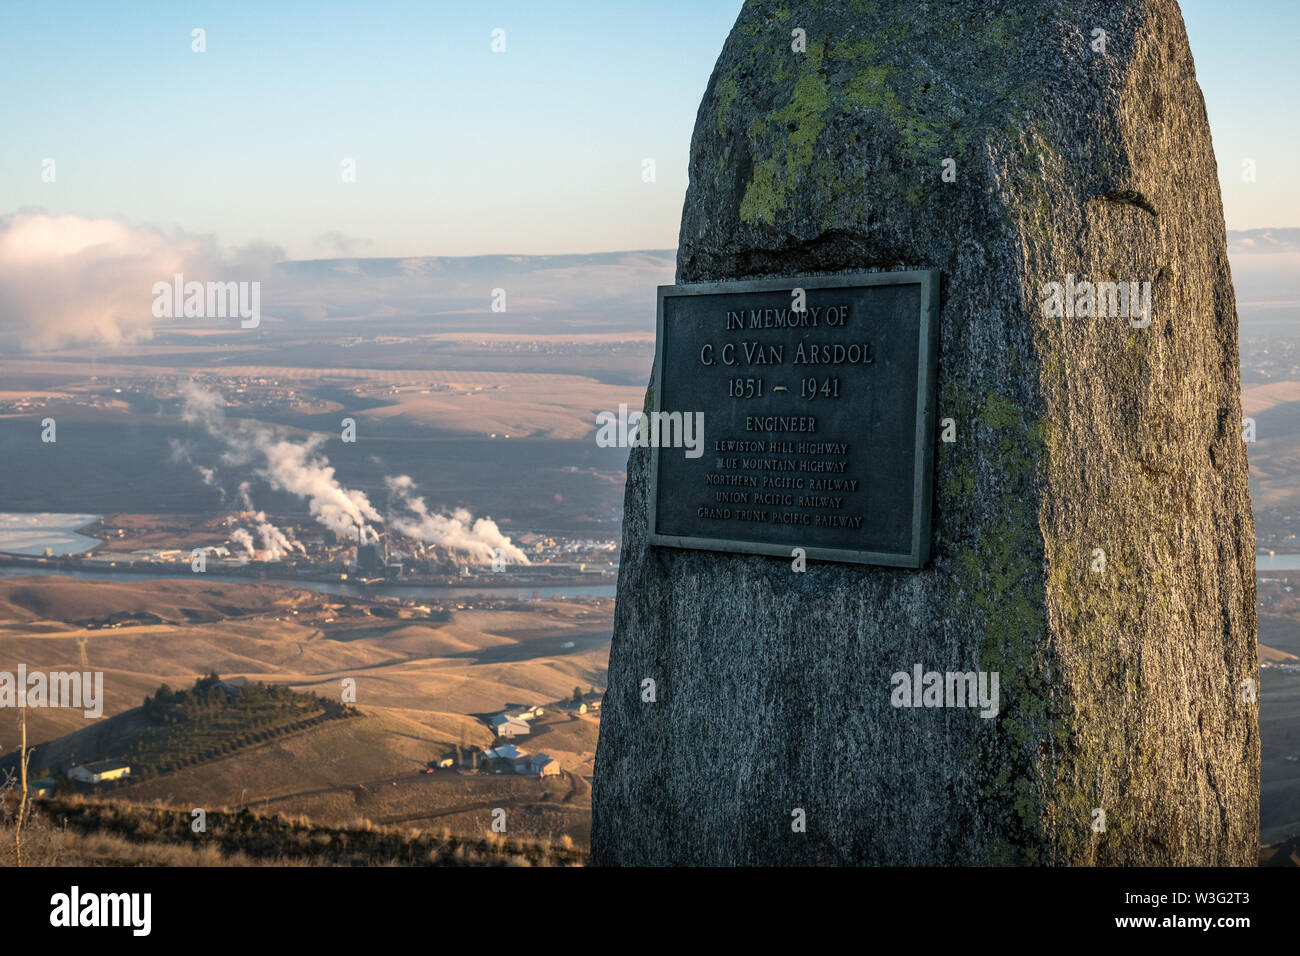 Memorial plaque for Arsdol, mounted on stone looking over a factory in Lewiston, Idaho - Stock Image